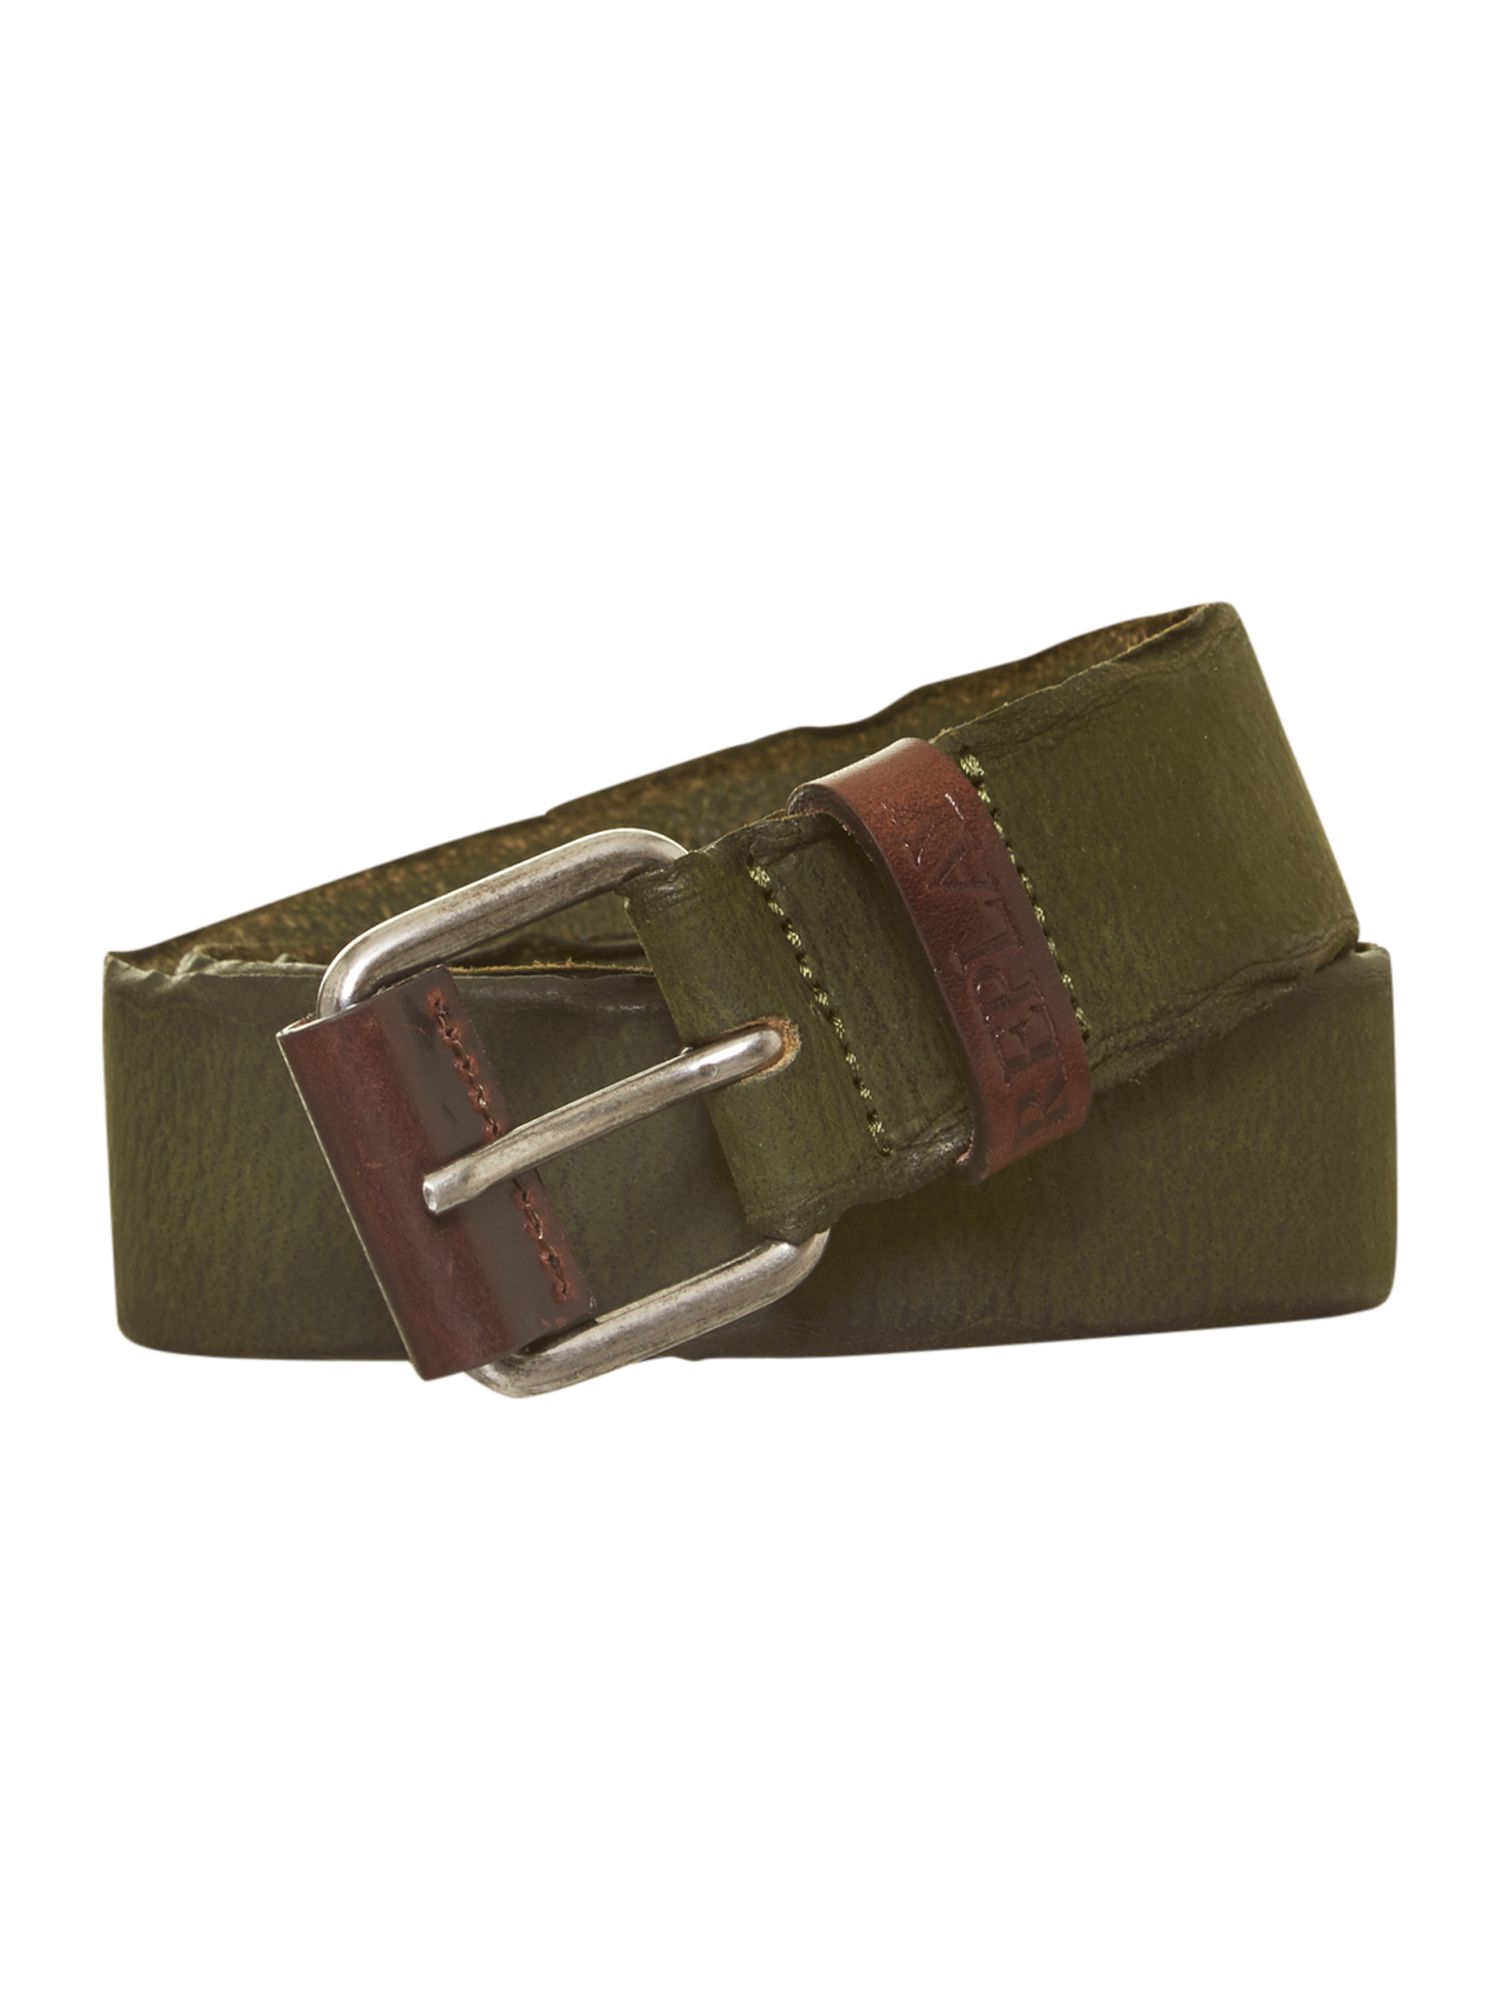 Faded leather belt